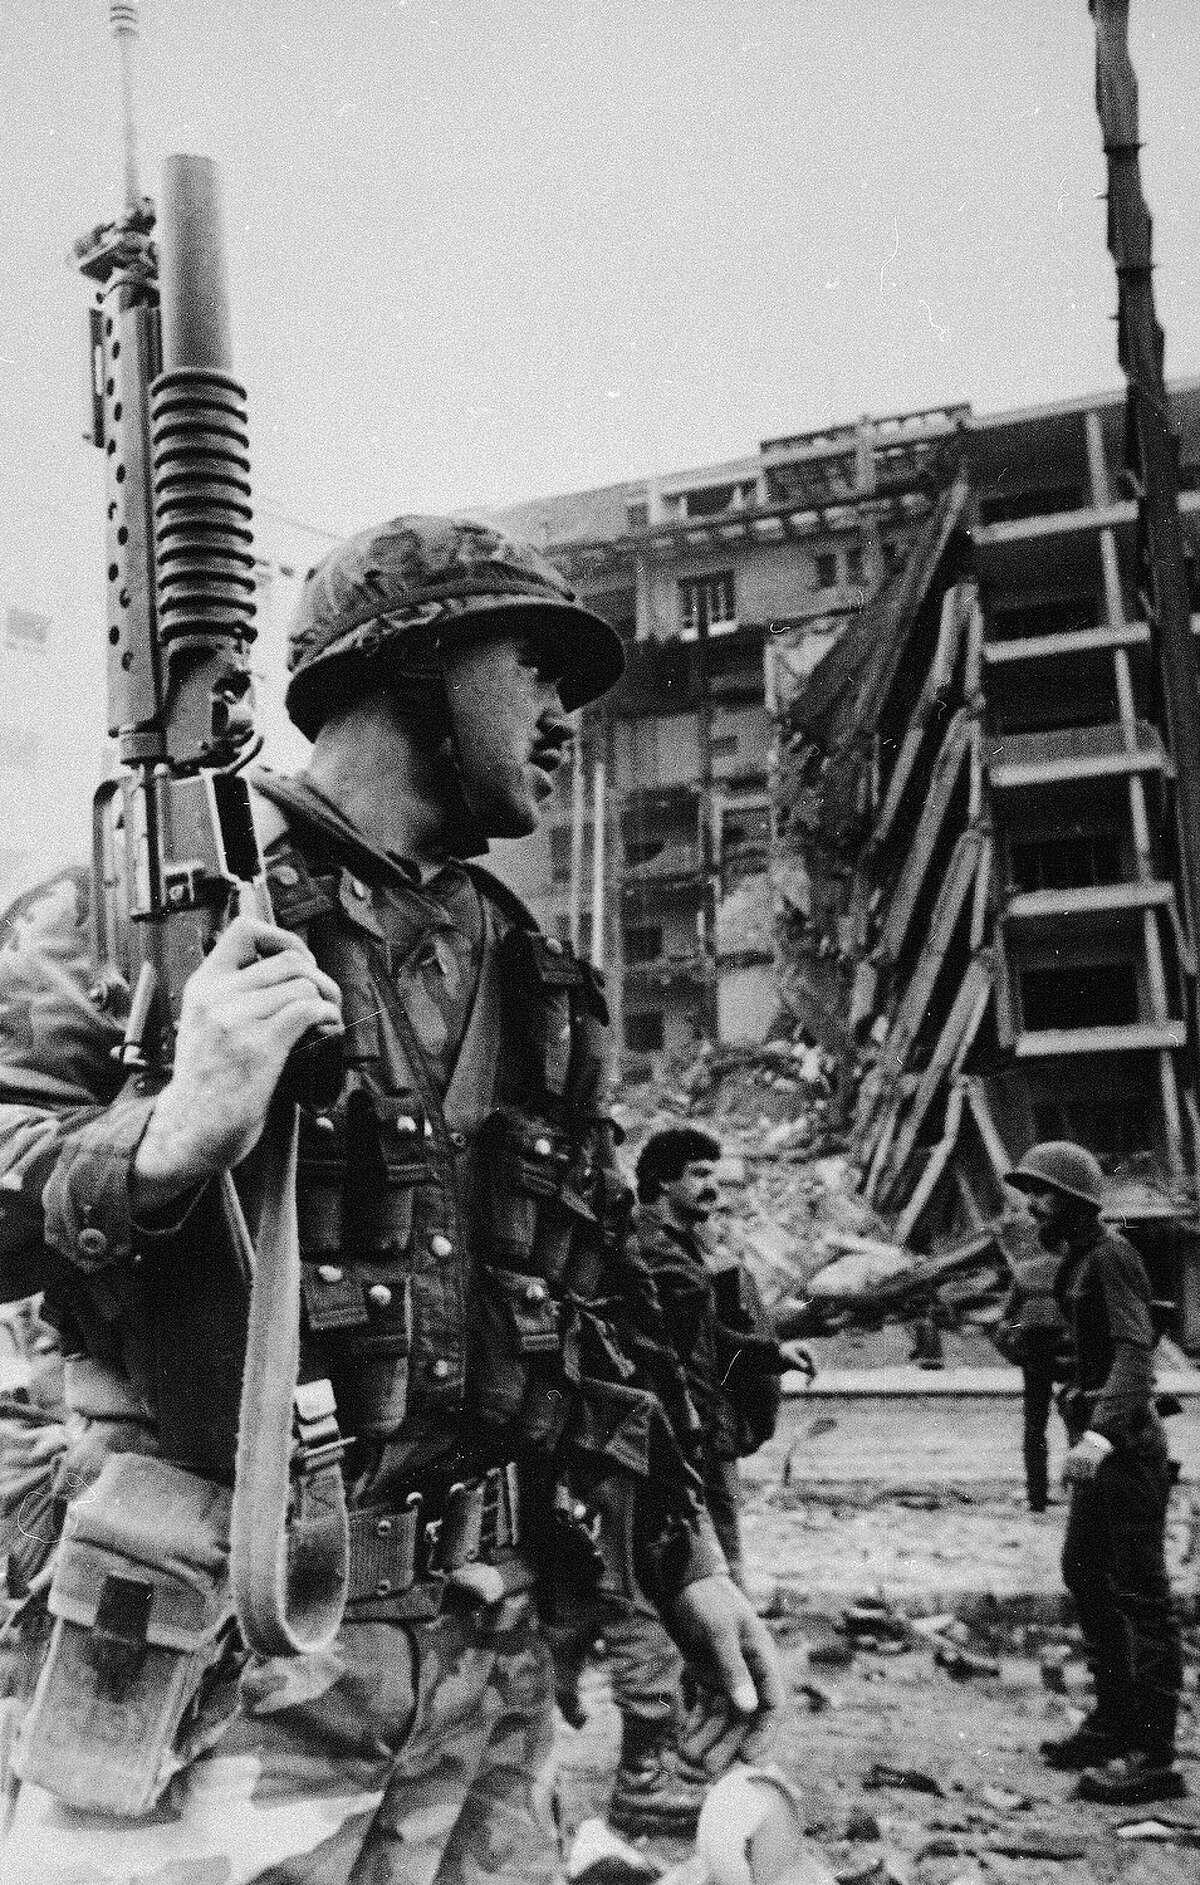 A U.S. Marine, armed with an automatic rifle/grenade launcher, stands guard outside the American Embassy after a huge bomb ripped throughout the building, collapsing the entire front section of the seven-story building, April 18, 1983, in Beirut, Lebanon.